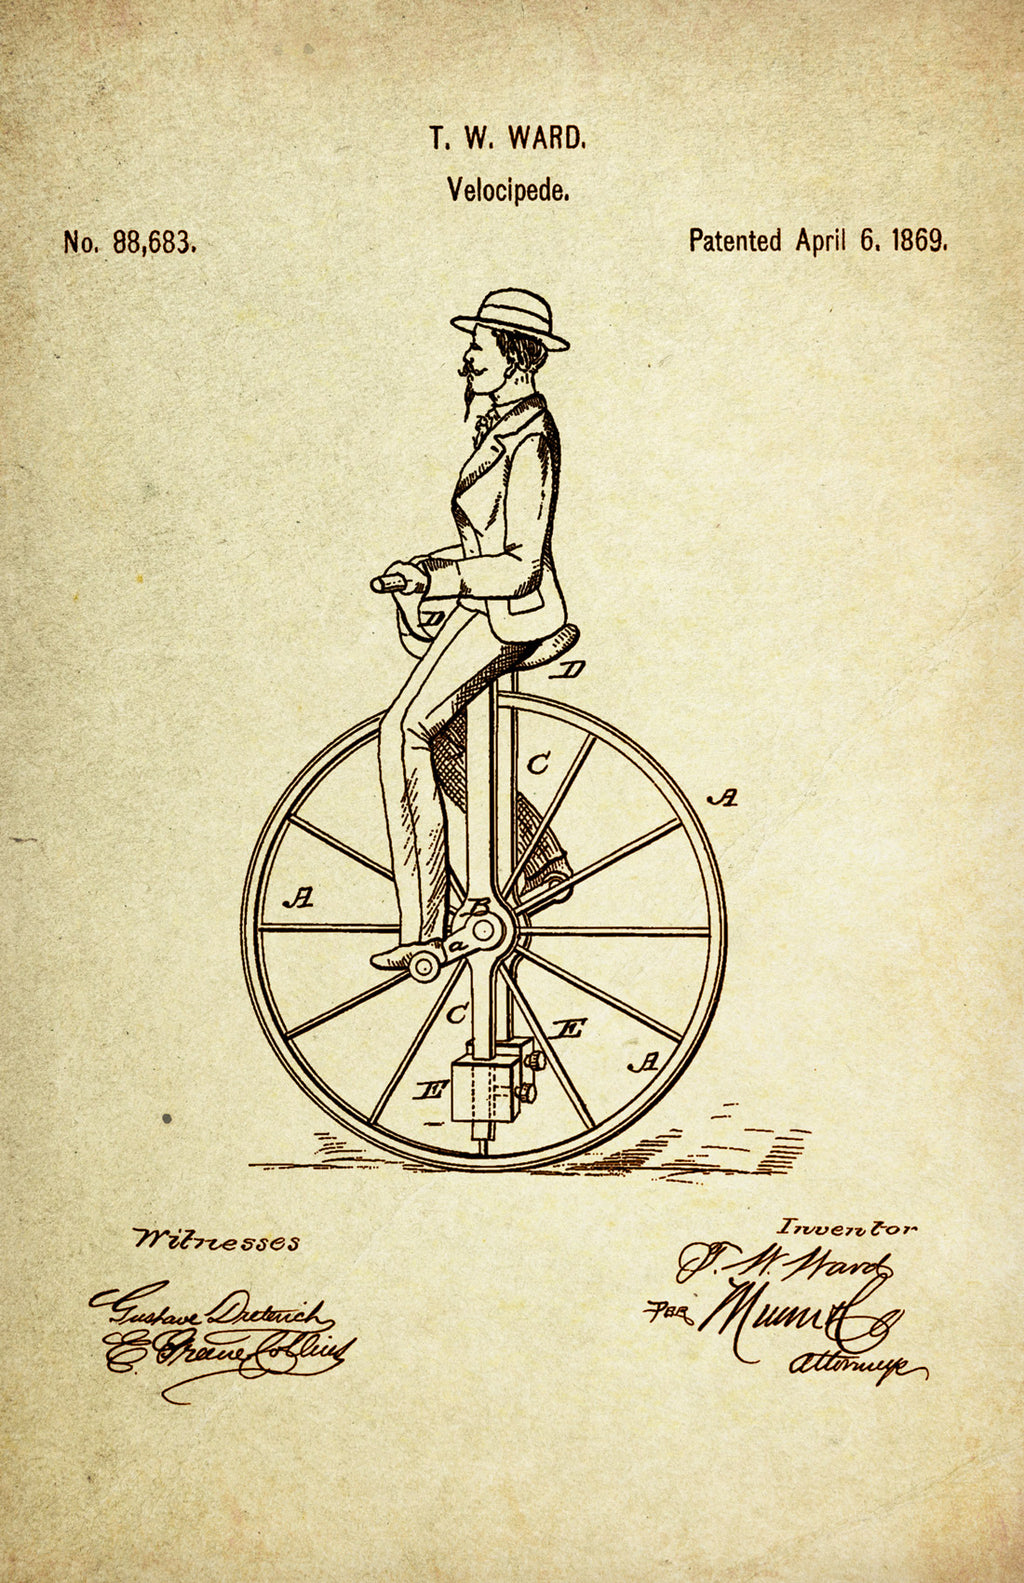 Unicycle/Velocipede Patent Poster Wall Decor (1869 by T.W. Ward)